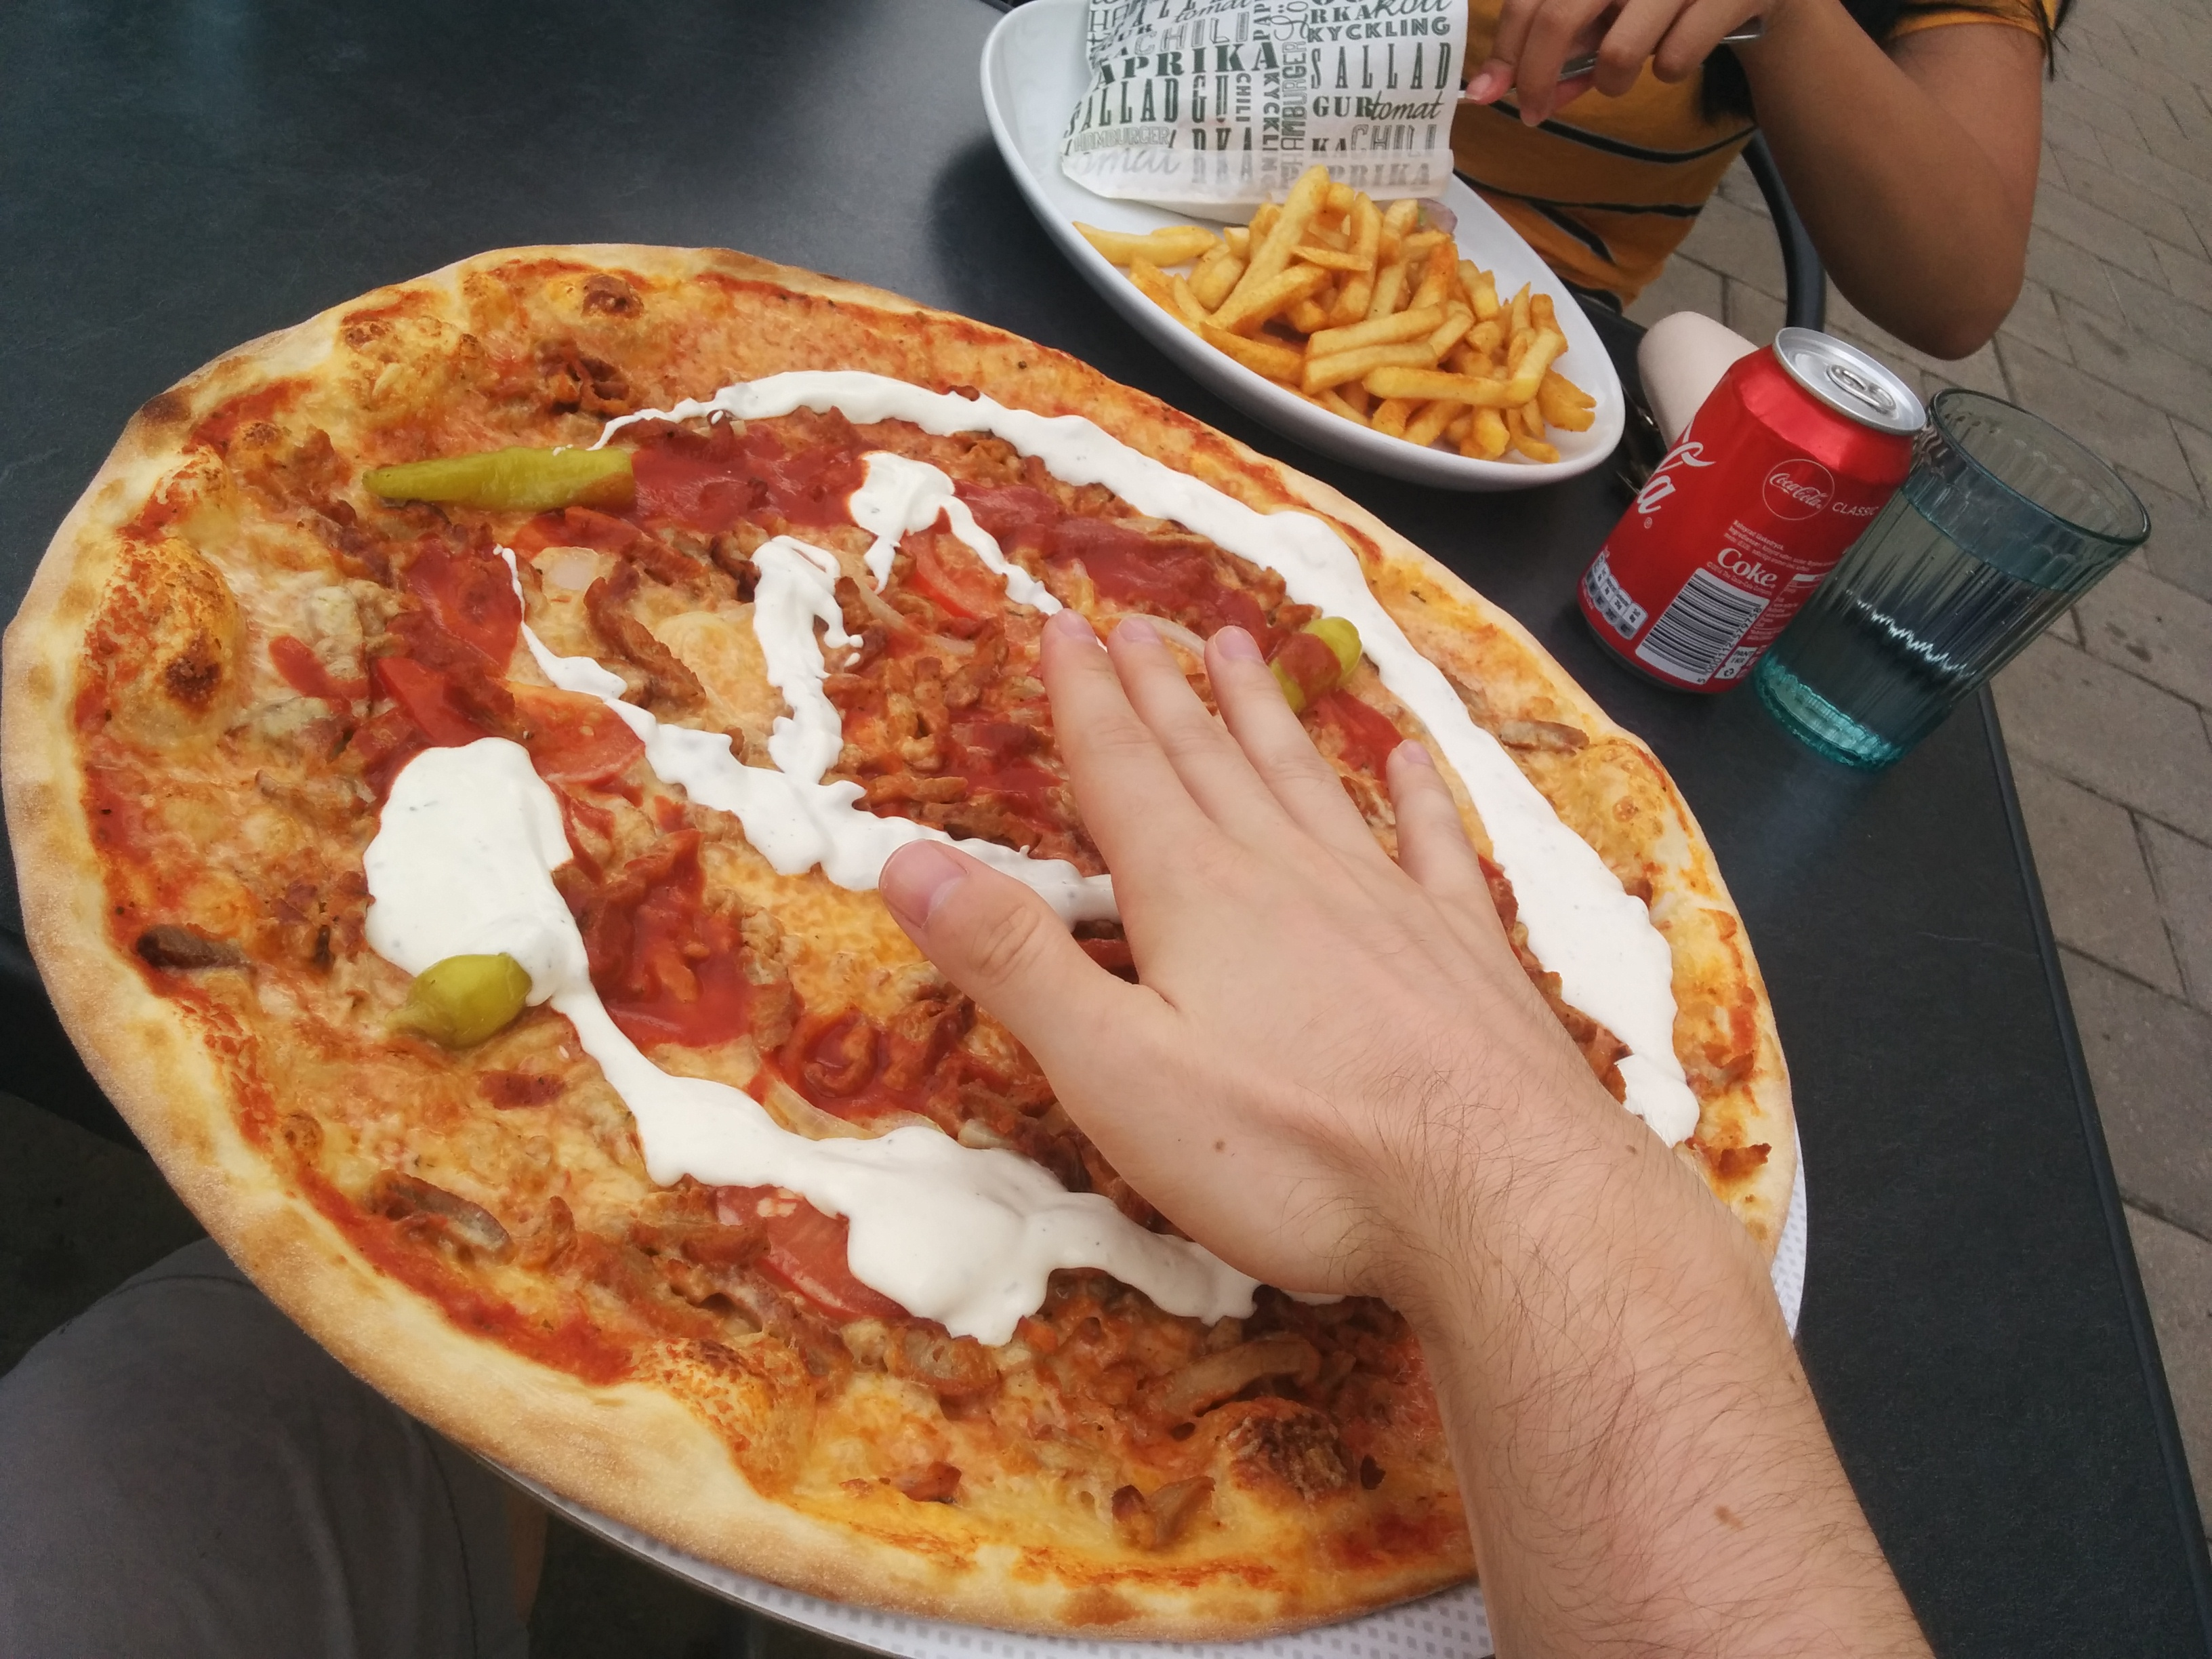 Pizza in Sweden. Suprisingly they are not expensive, about 10€ if I remember correctly, which is cheap for Sweden.